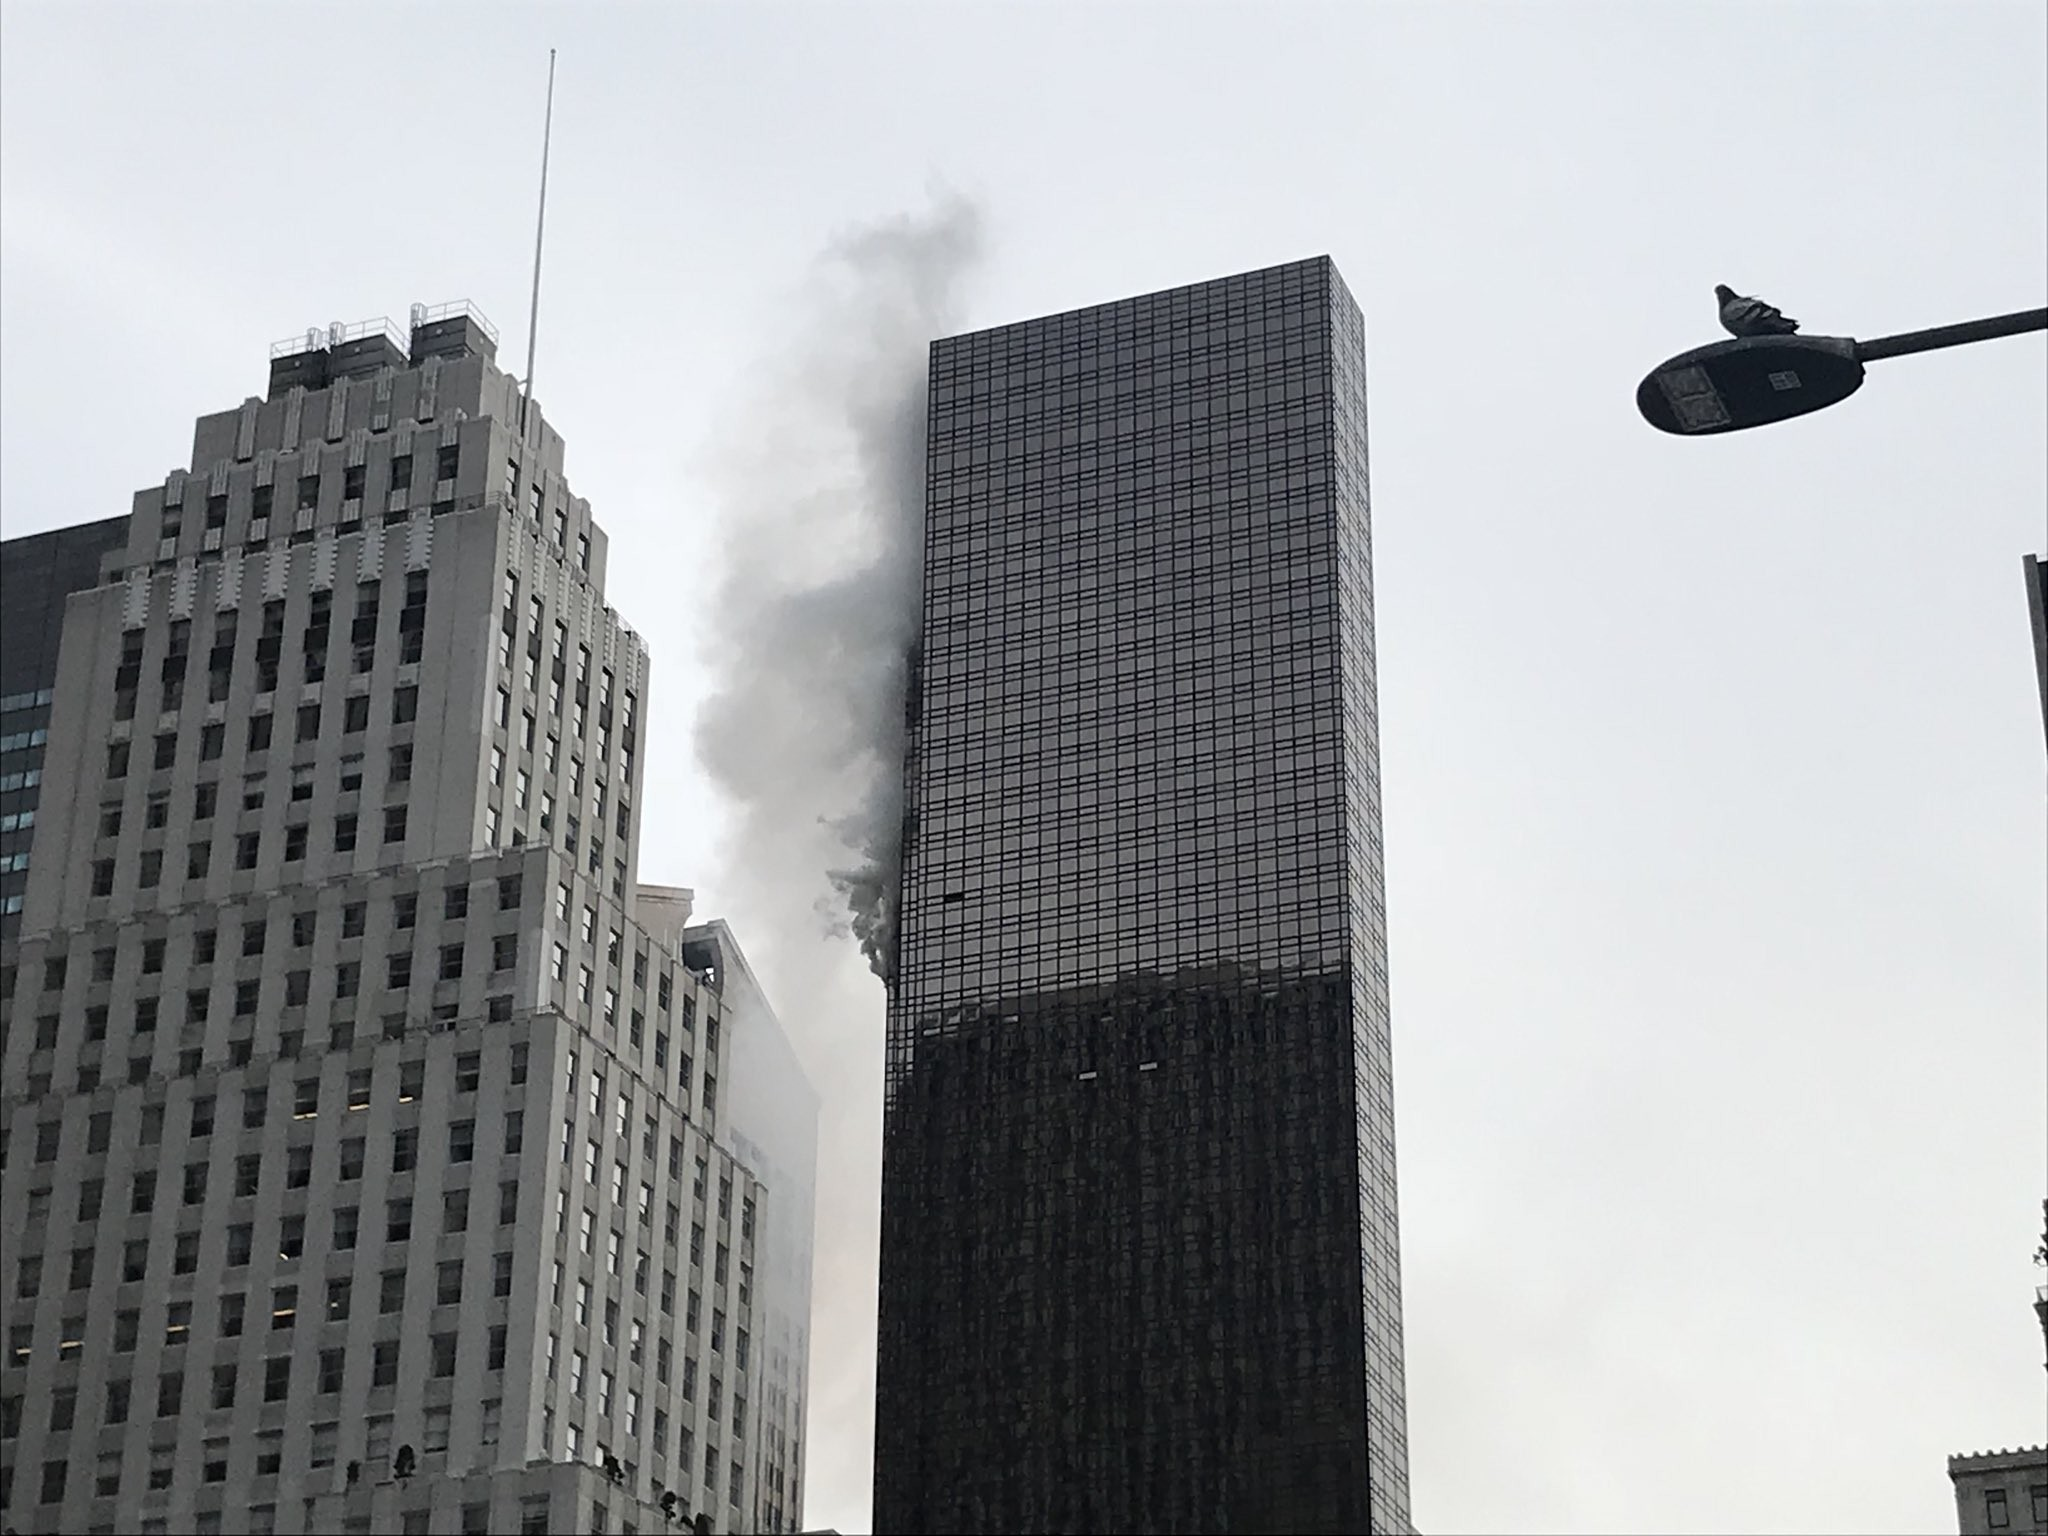 Fire breaks out at Trump Tower (photos)